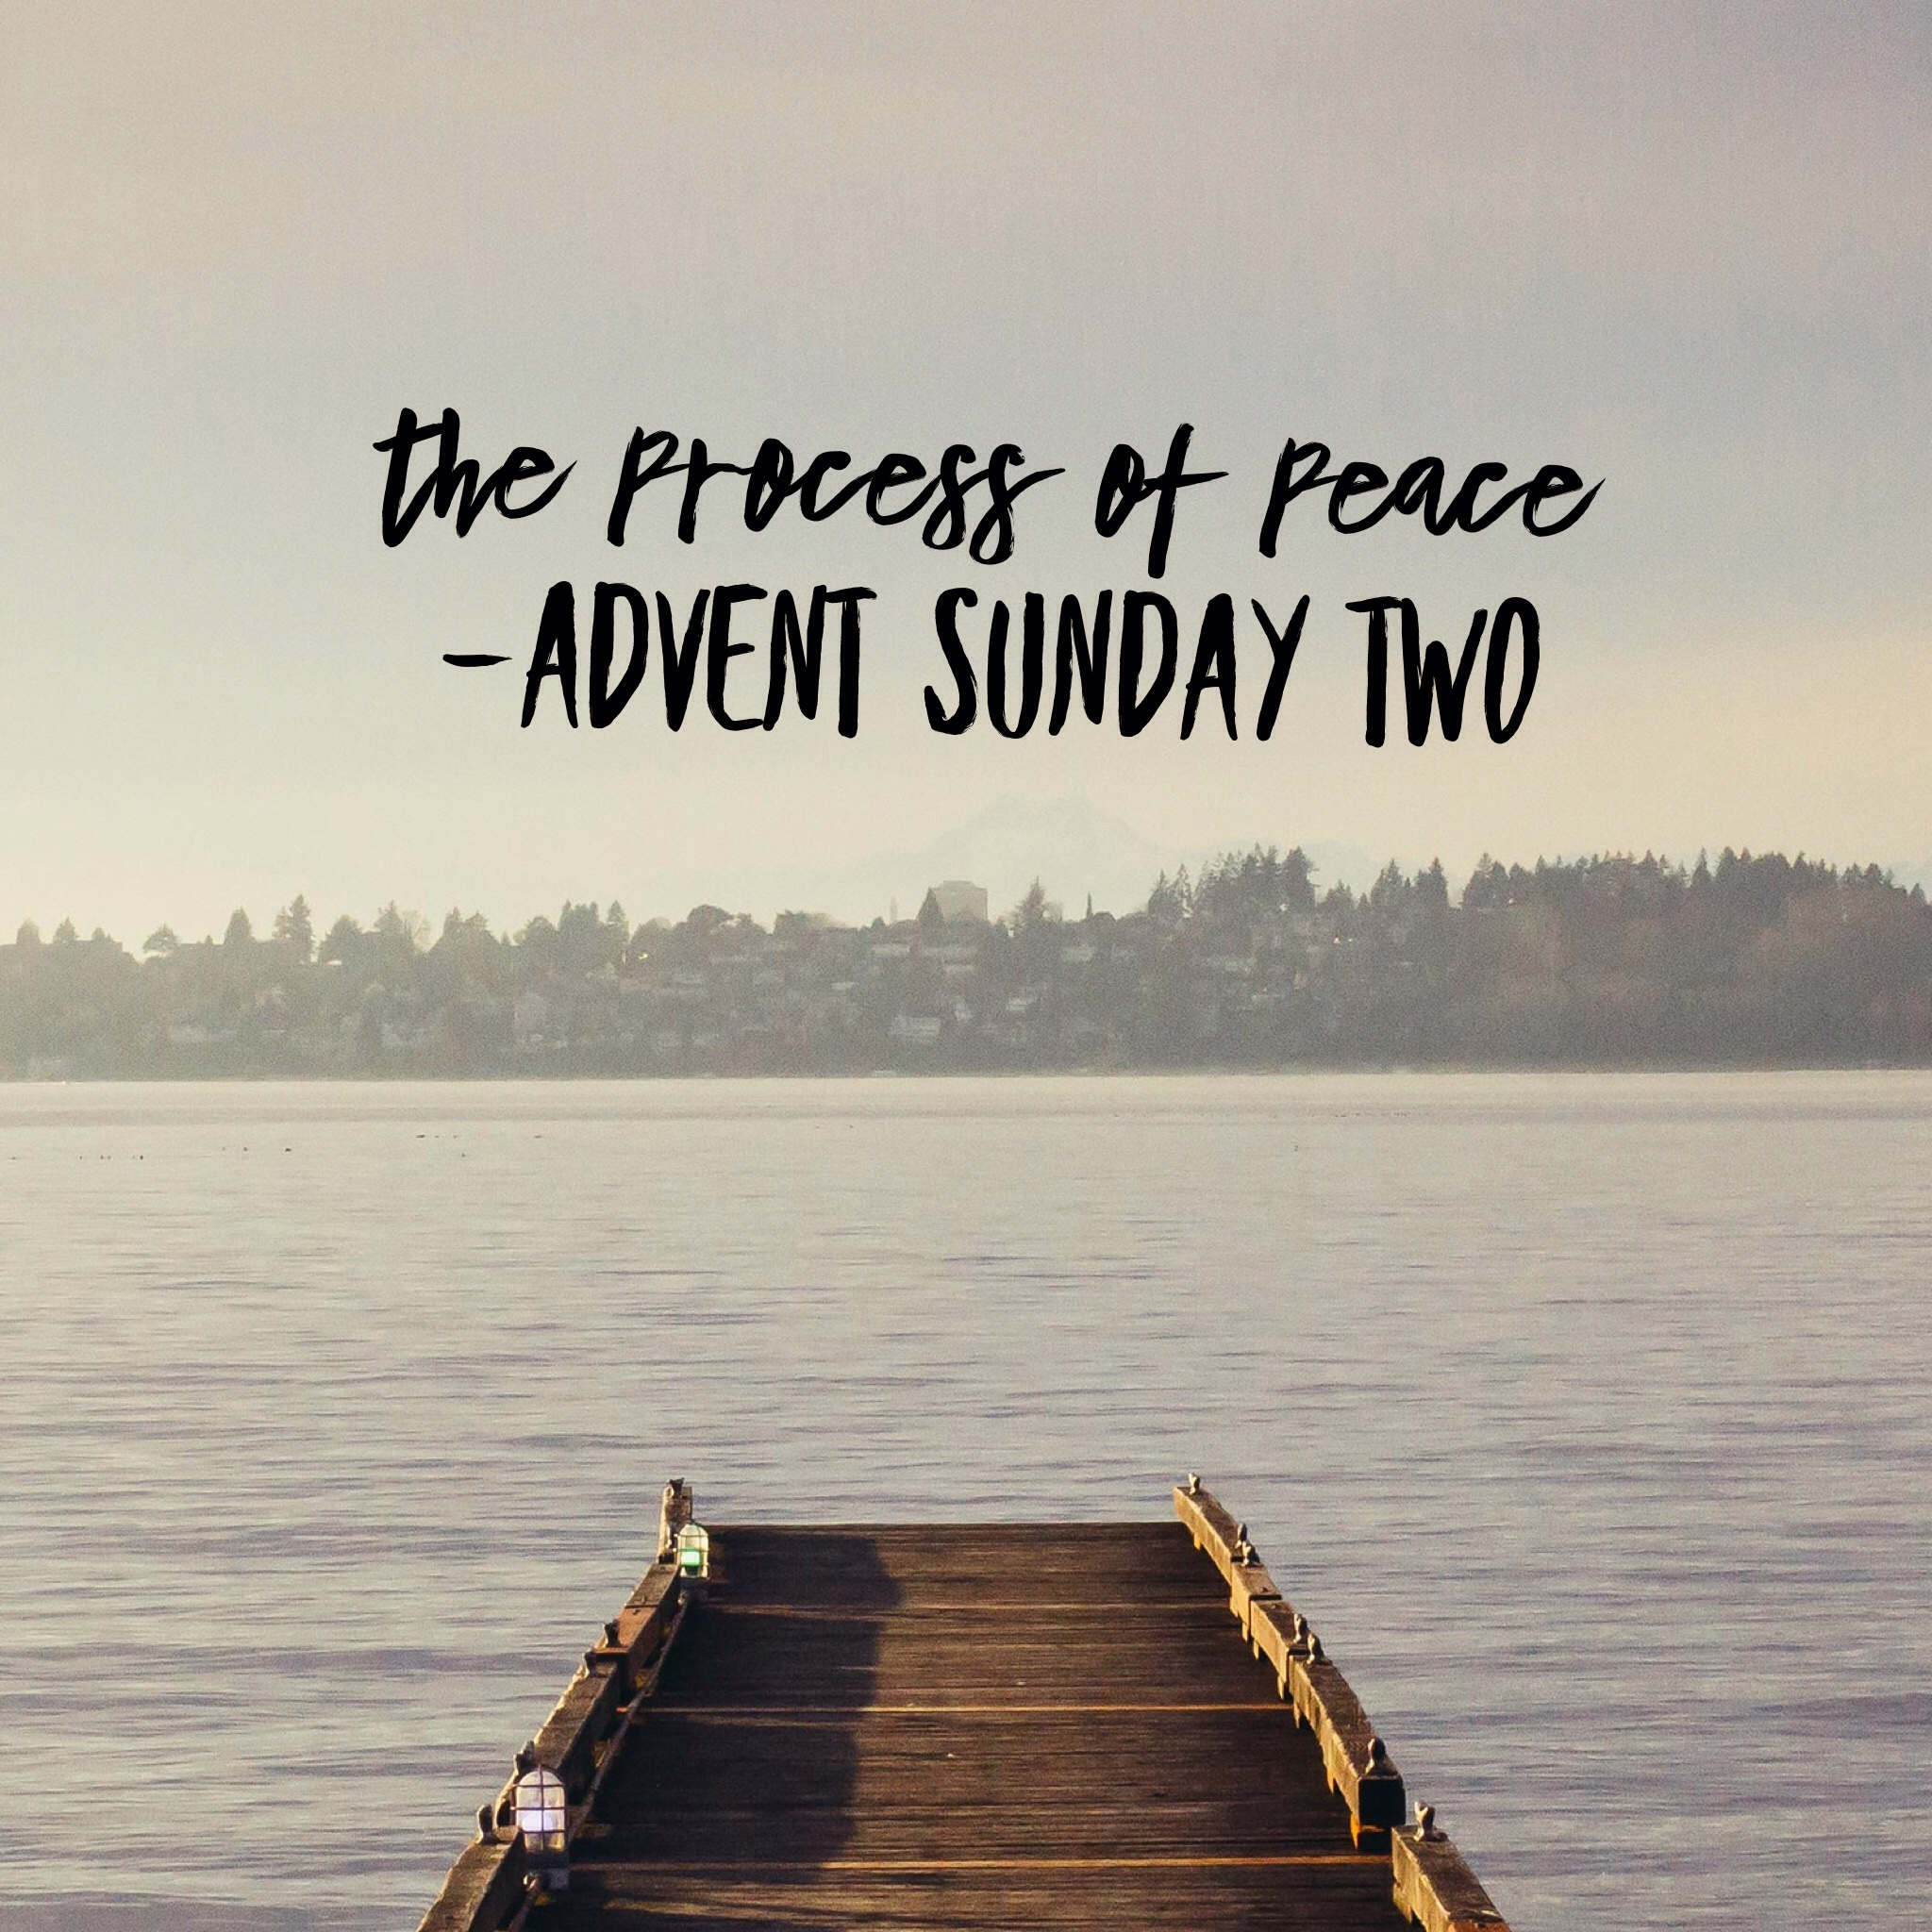 The Process of Peace